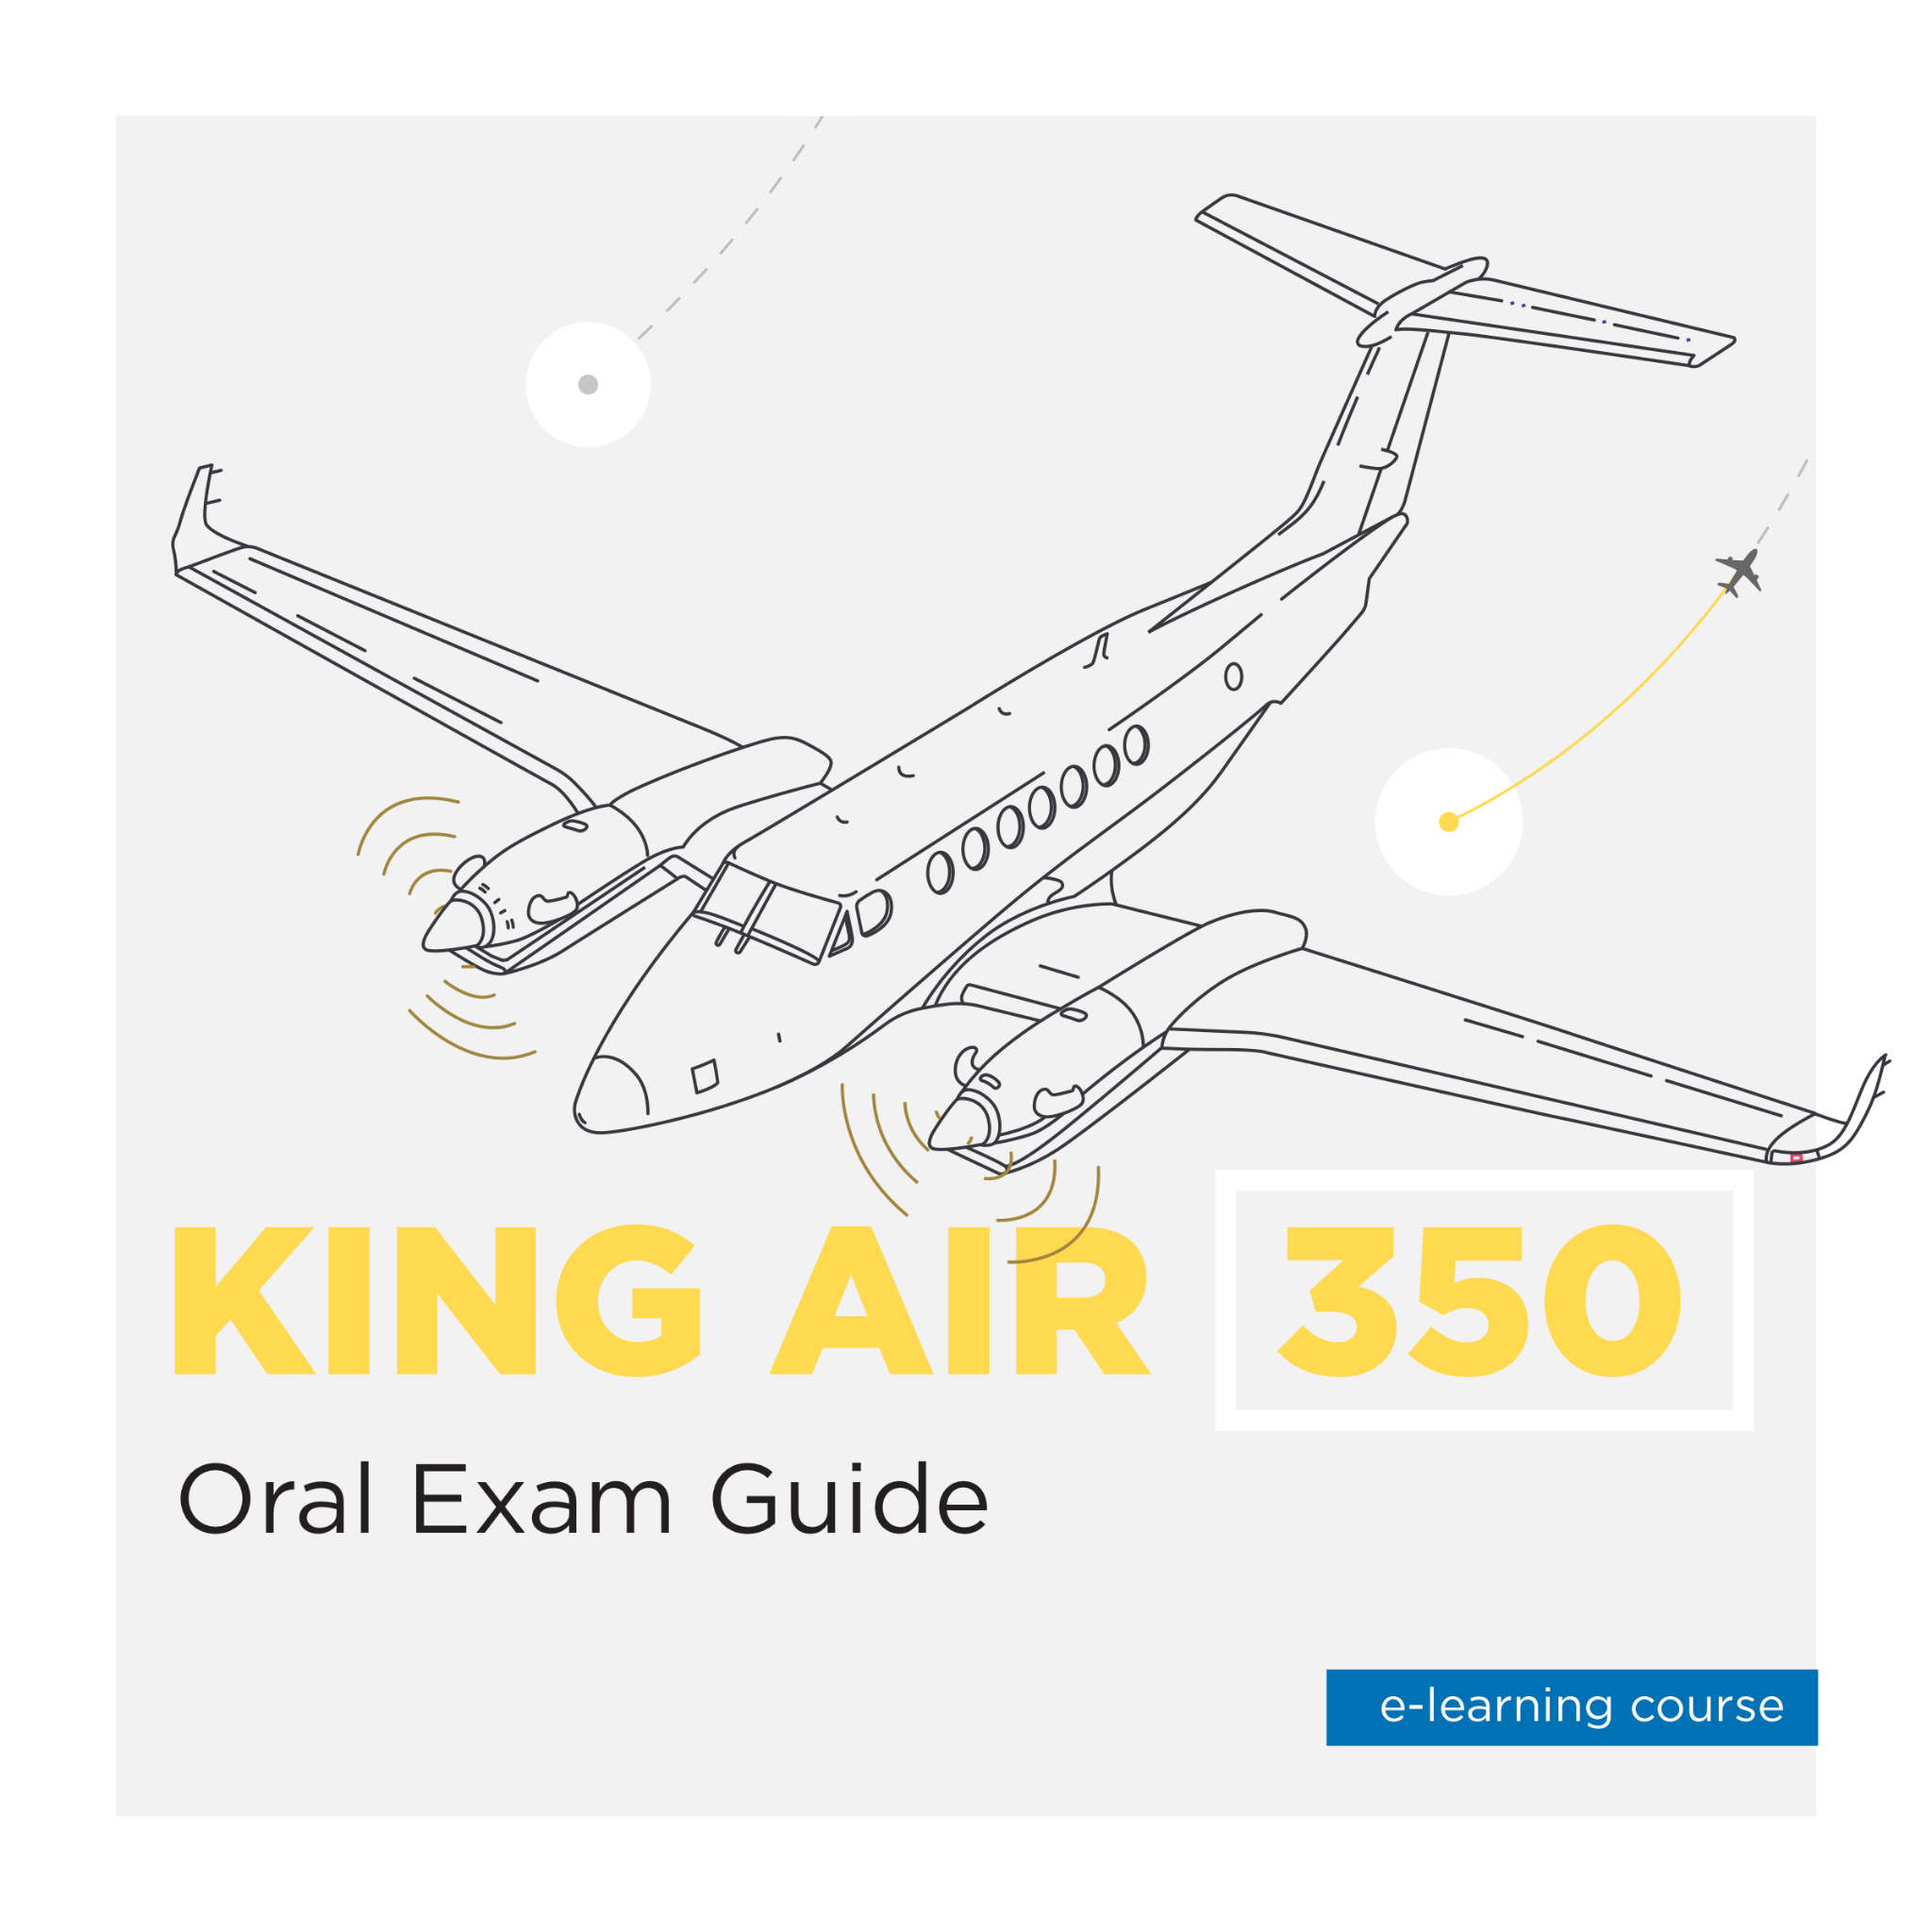 King Air 350 Oral Exam Guide  E-Learning Course